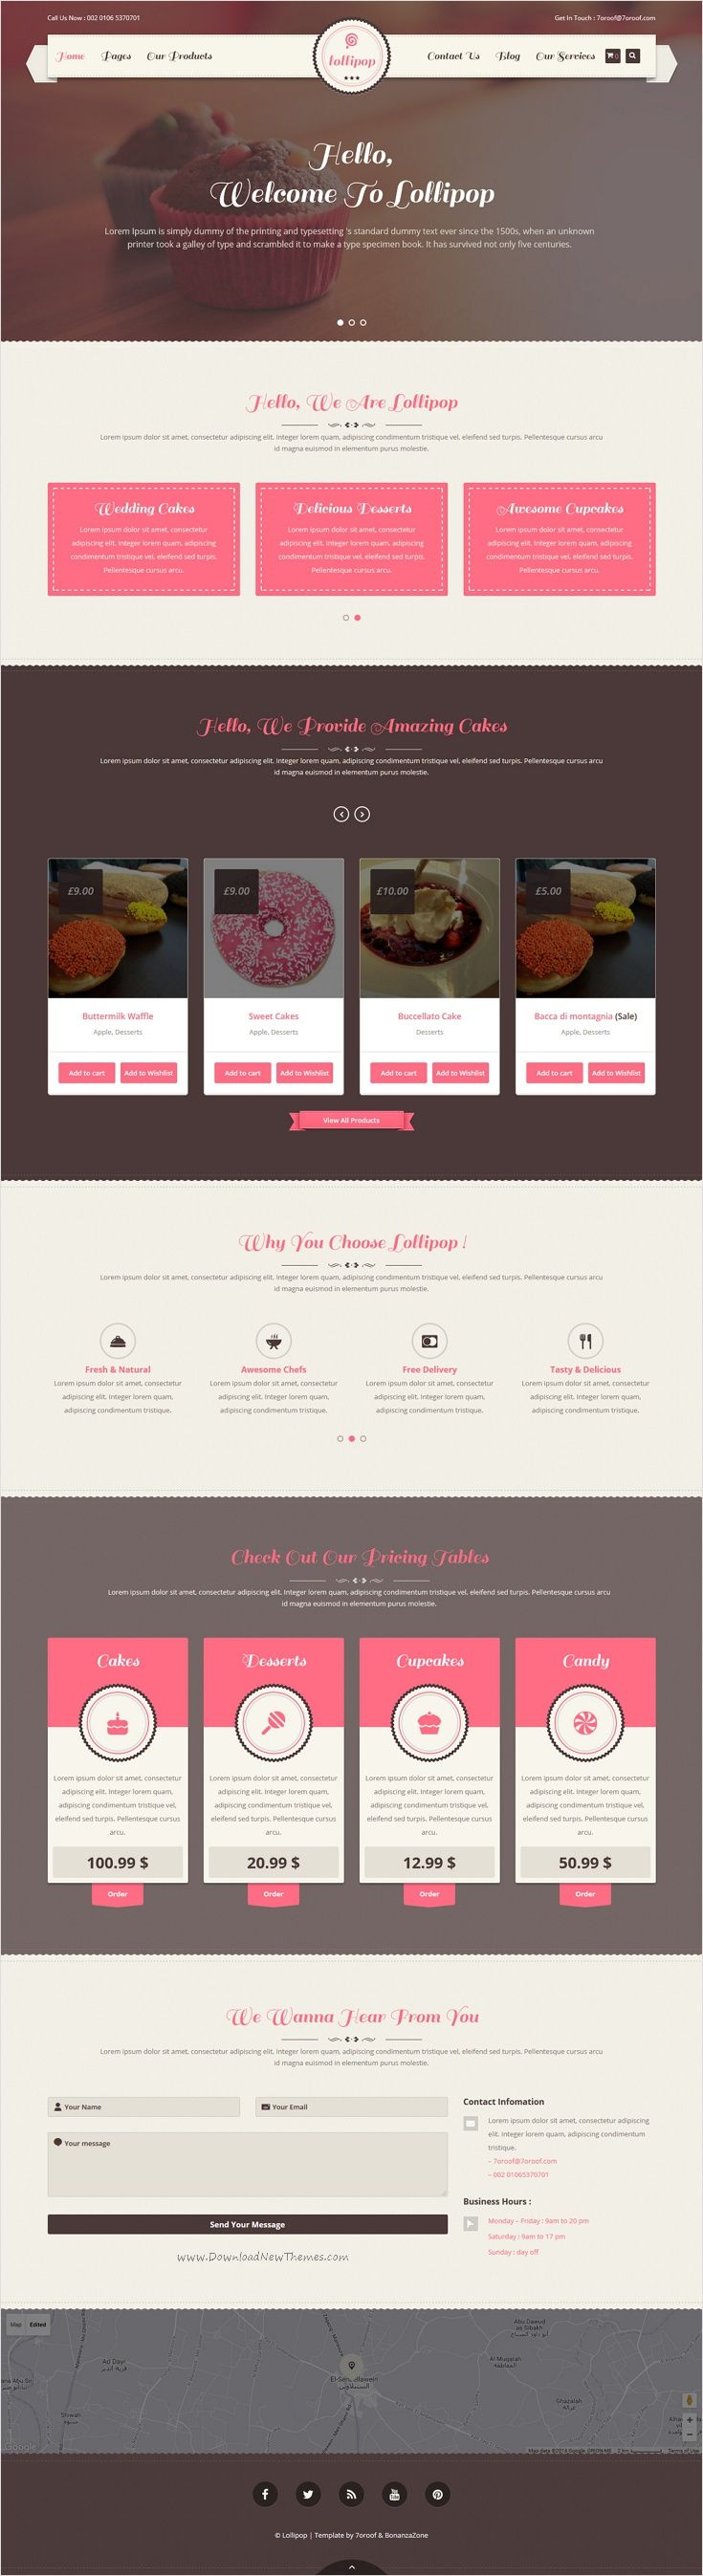 Lollipop is a premium and professional 2 in 1 #WordPress theme for Cakes, Bakeries, #Sweets, #Restaurants or #Food Business website download now➩ https://themeforest.net/item/lollipop-awesome-sweets-cakes-responsive-wordpress-theme/16124294?ref=Datasata